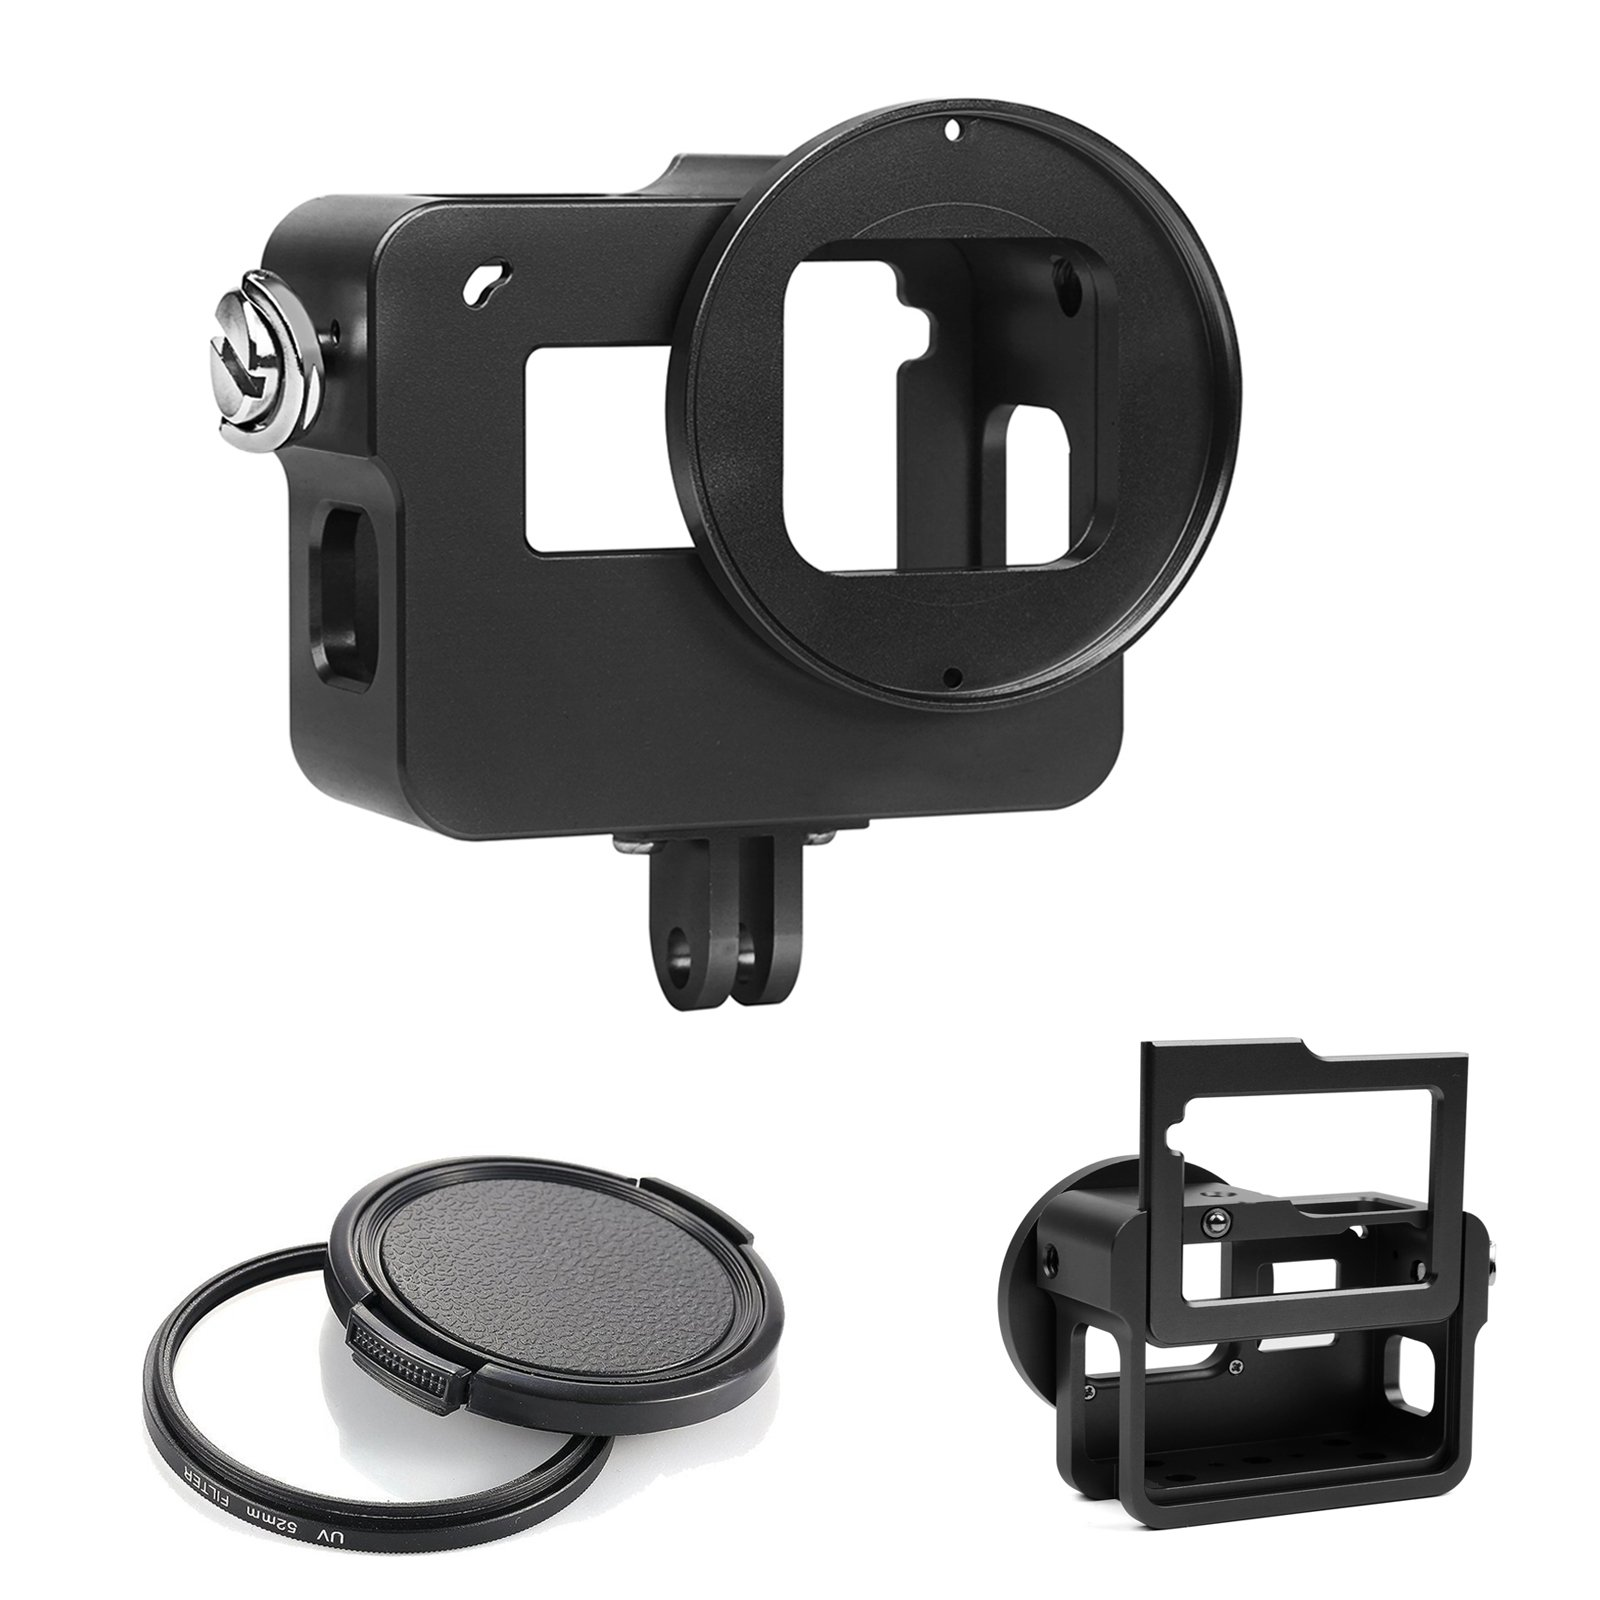 D&F Upgrade Aluminium Alloy Protective Housing Case Skeleton Border Frame with Backdoor for GoPro Hero 5 by D&F